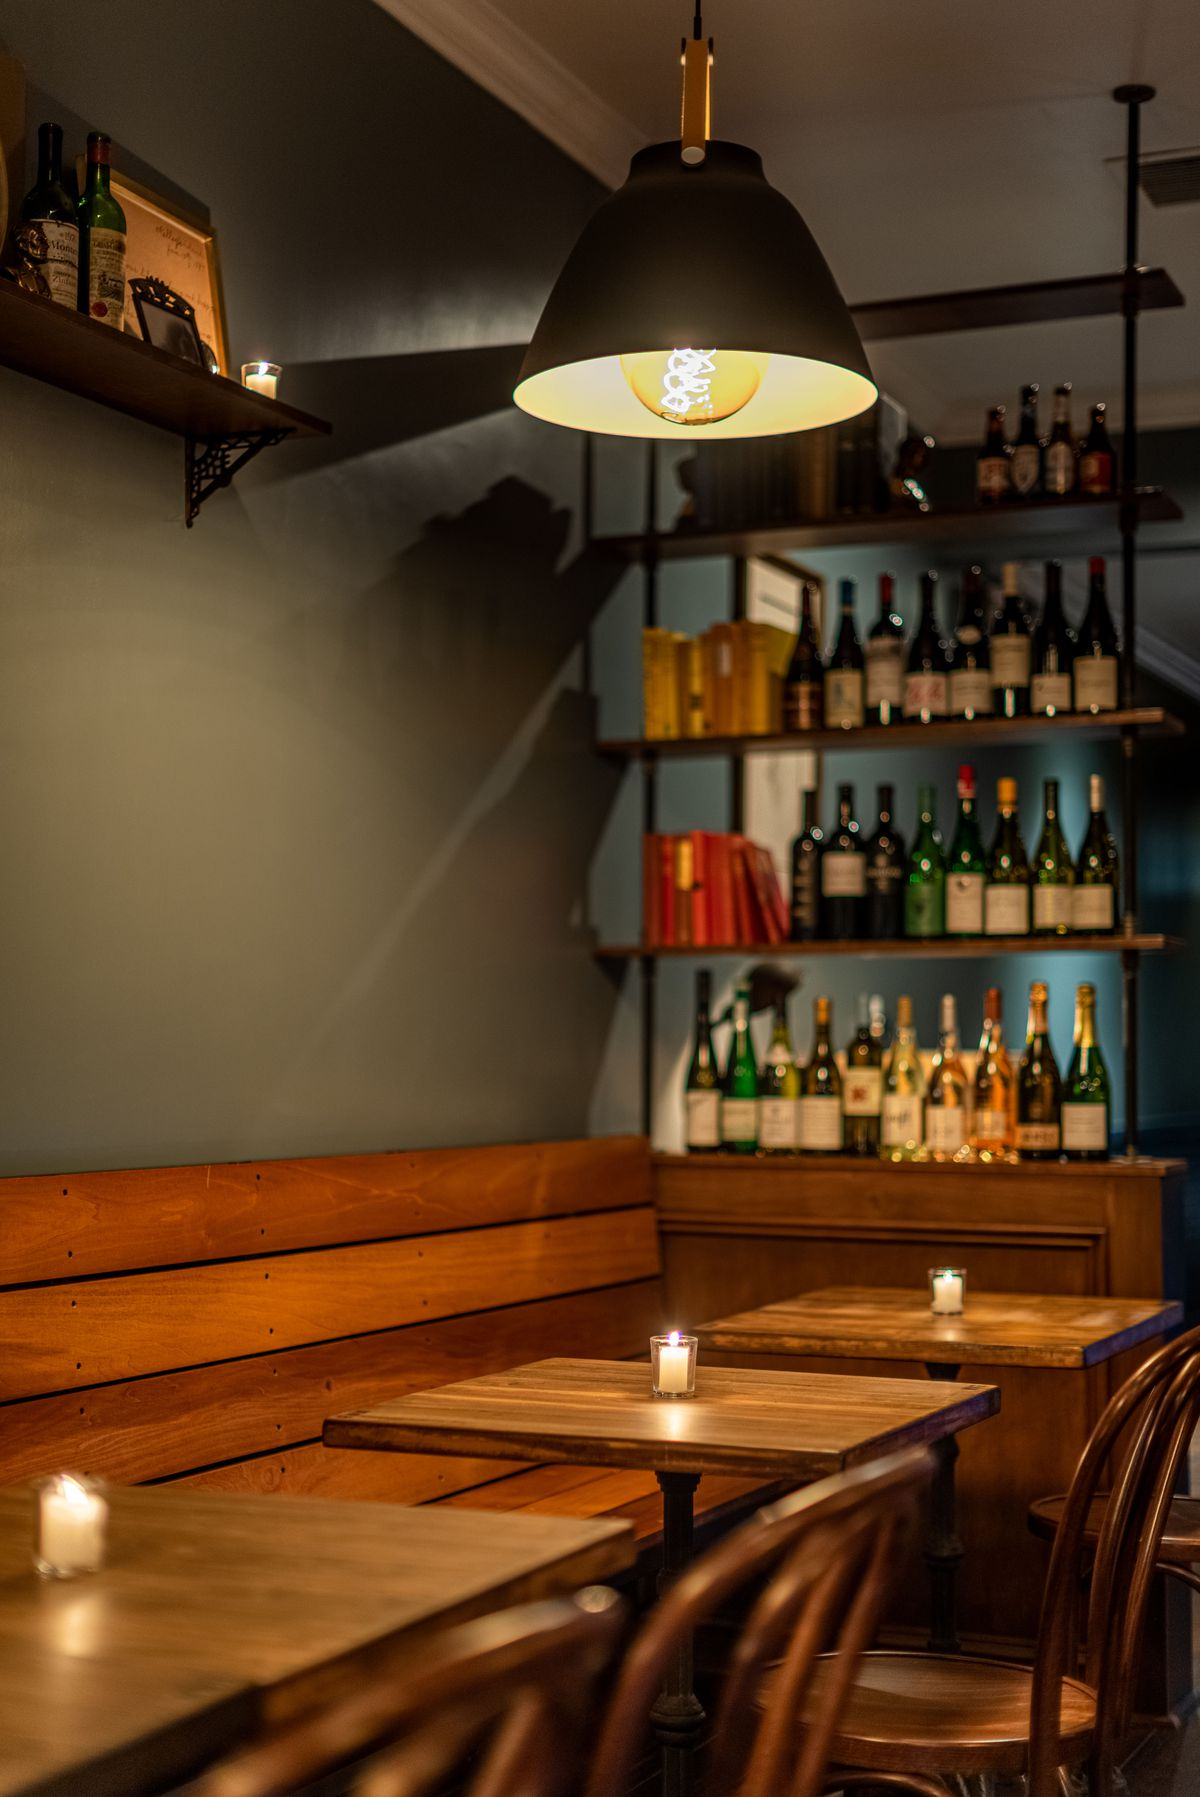 Vintage lighting and wooden tables at an old school wine bar.